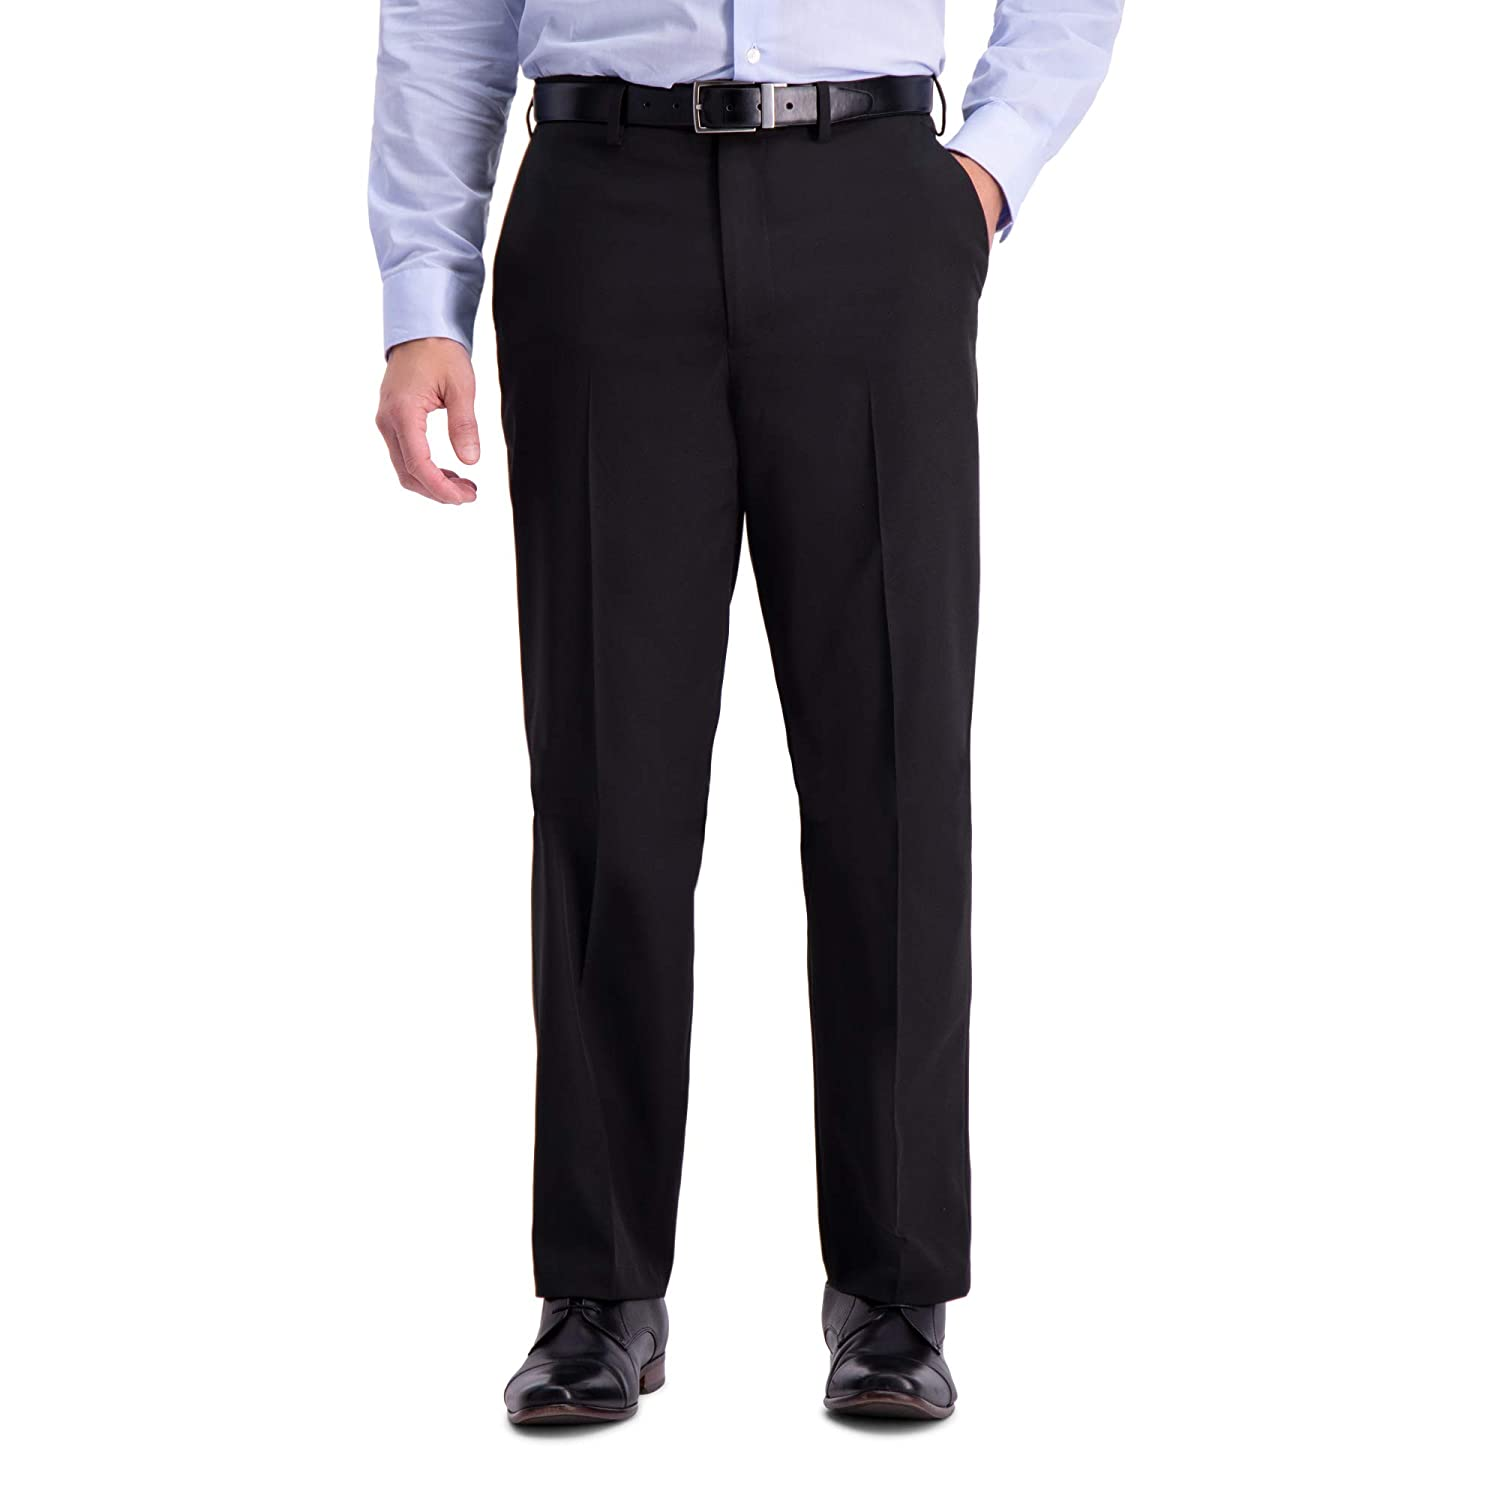 Haggar Men's Active Series Stretch Classic Fit Suit Separate Pant, HY00243